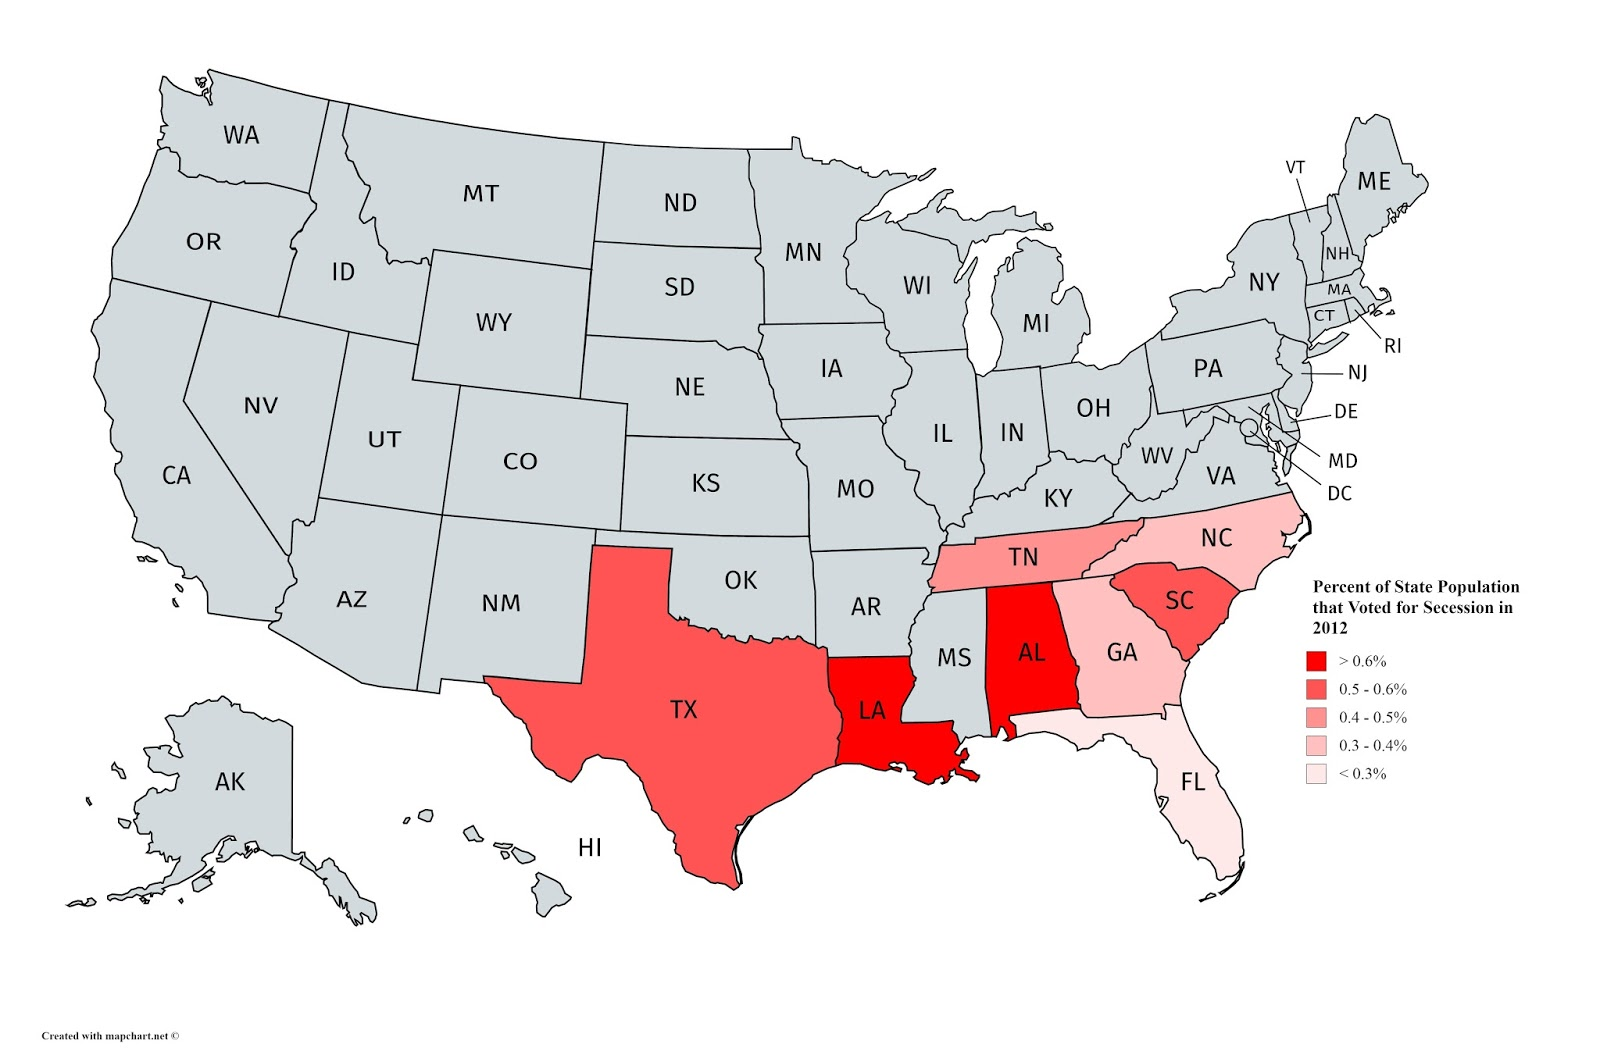 Percent of state population that voted for secession